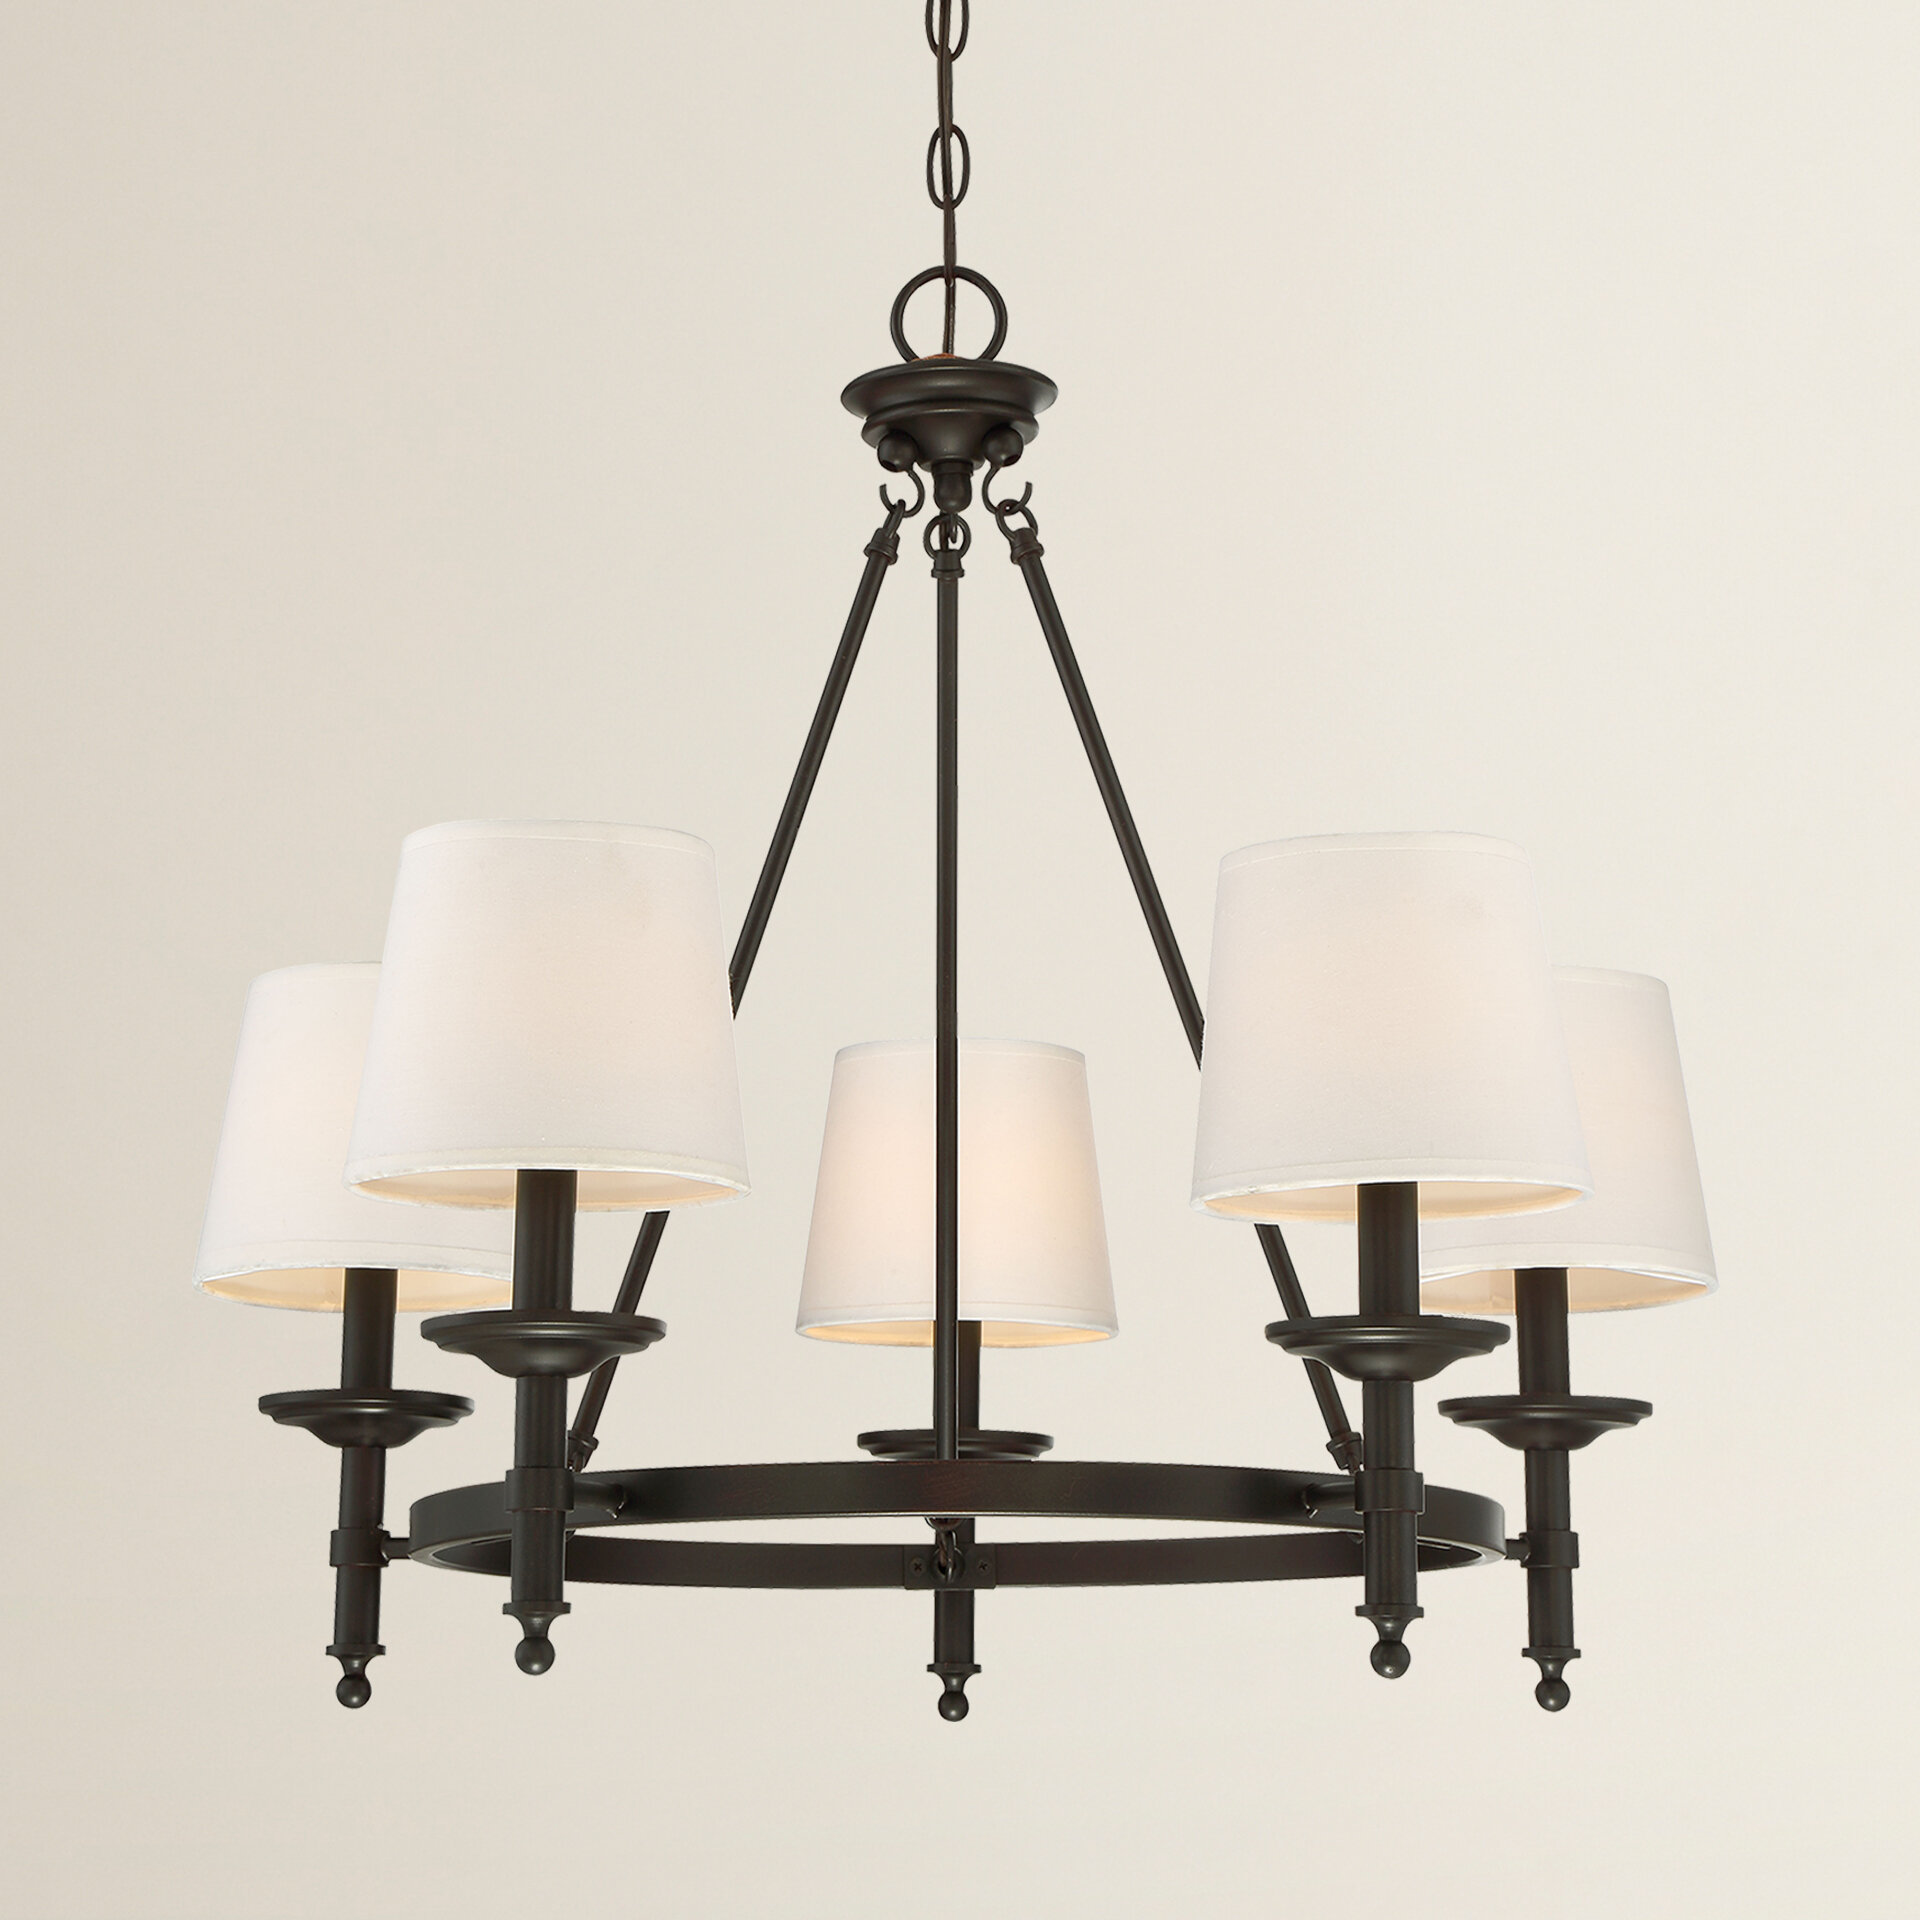 Glastonbury 5 Light Shaded Chandelier & Reviews